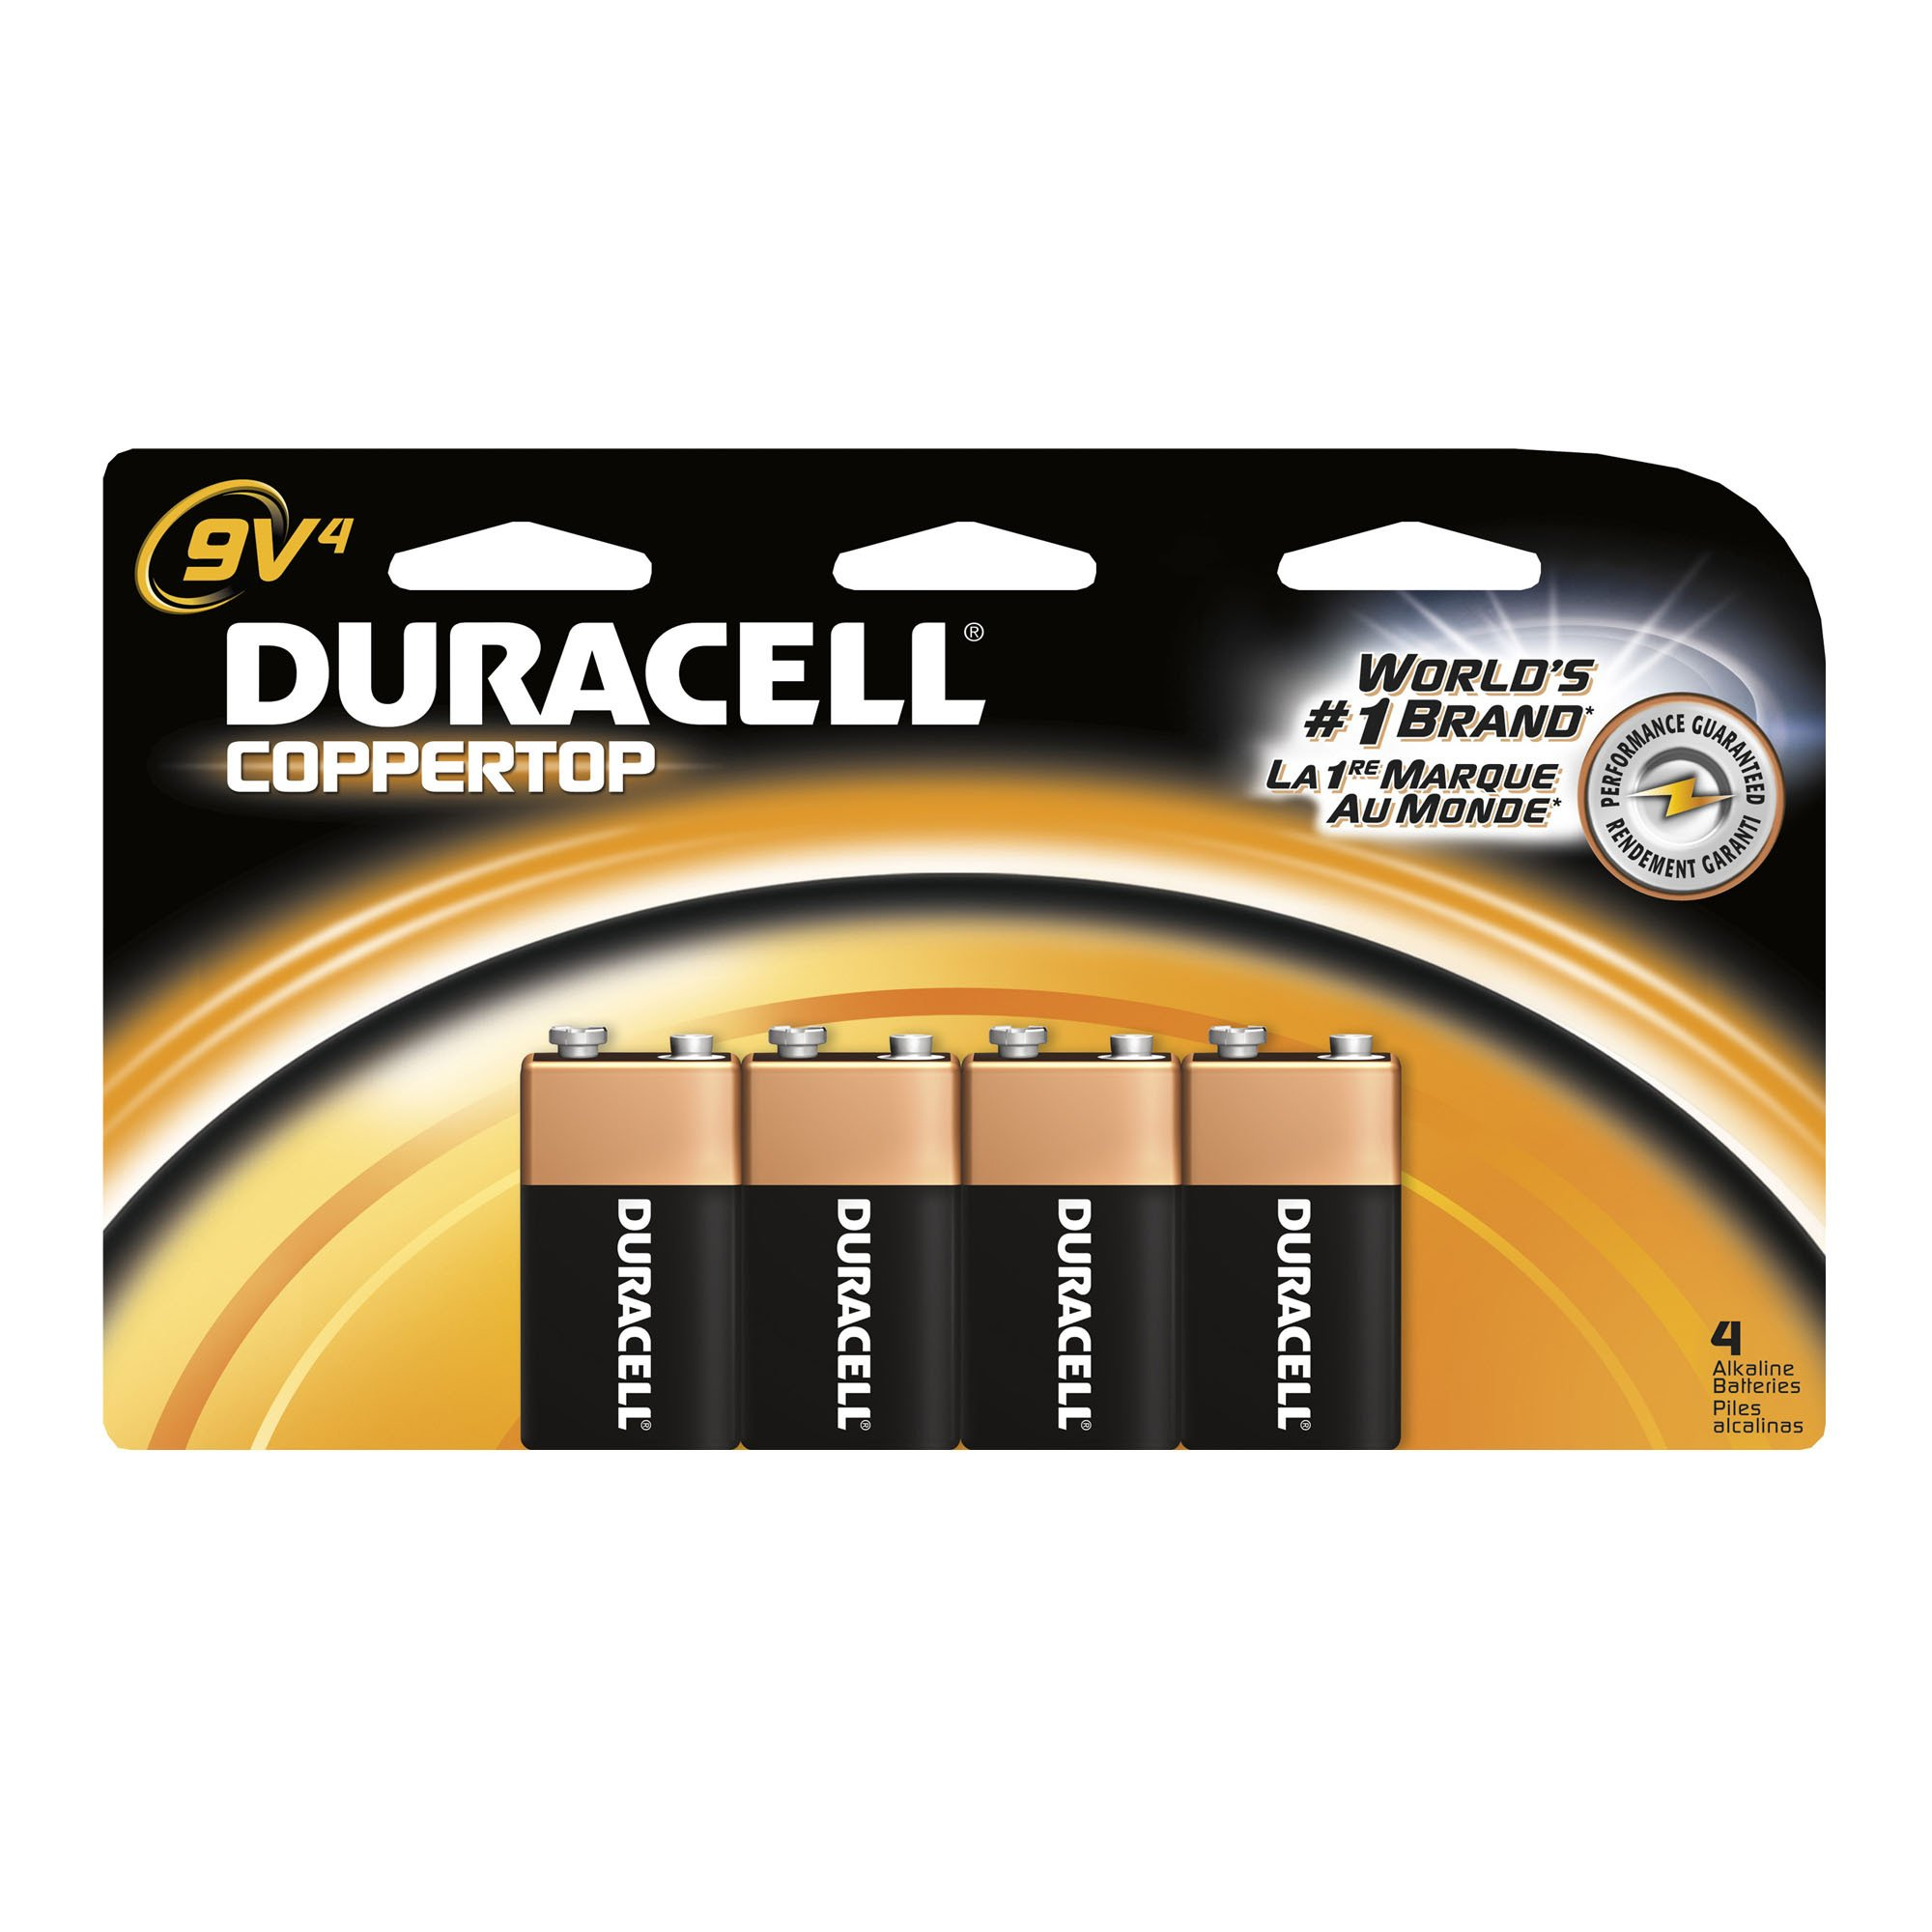 Duracell Coppertop 9-Volt Batteries, 4-Count (Pack of 2) by Duracell